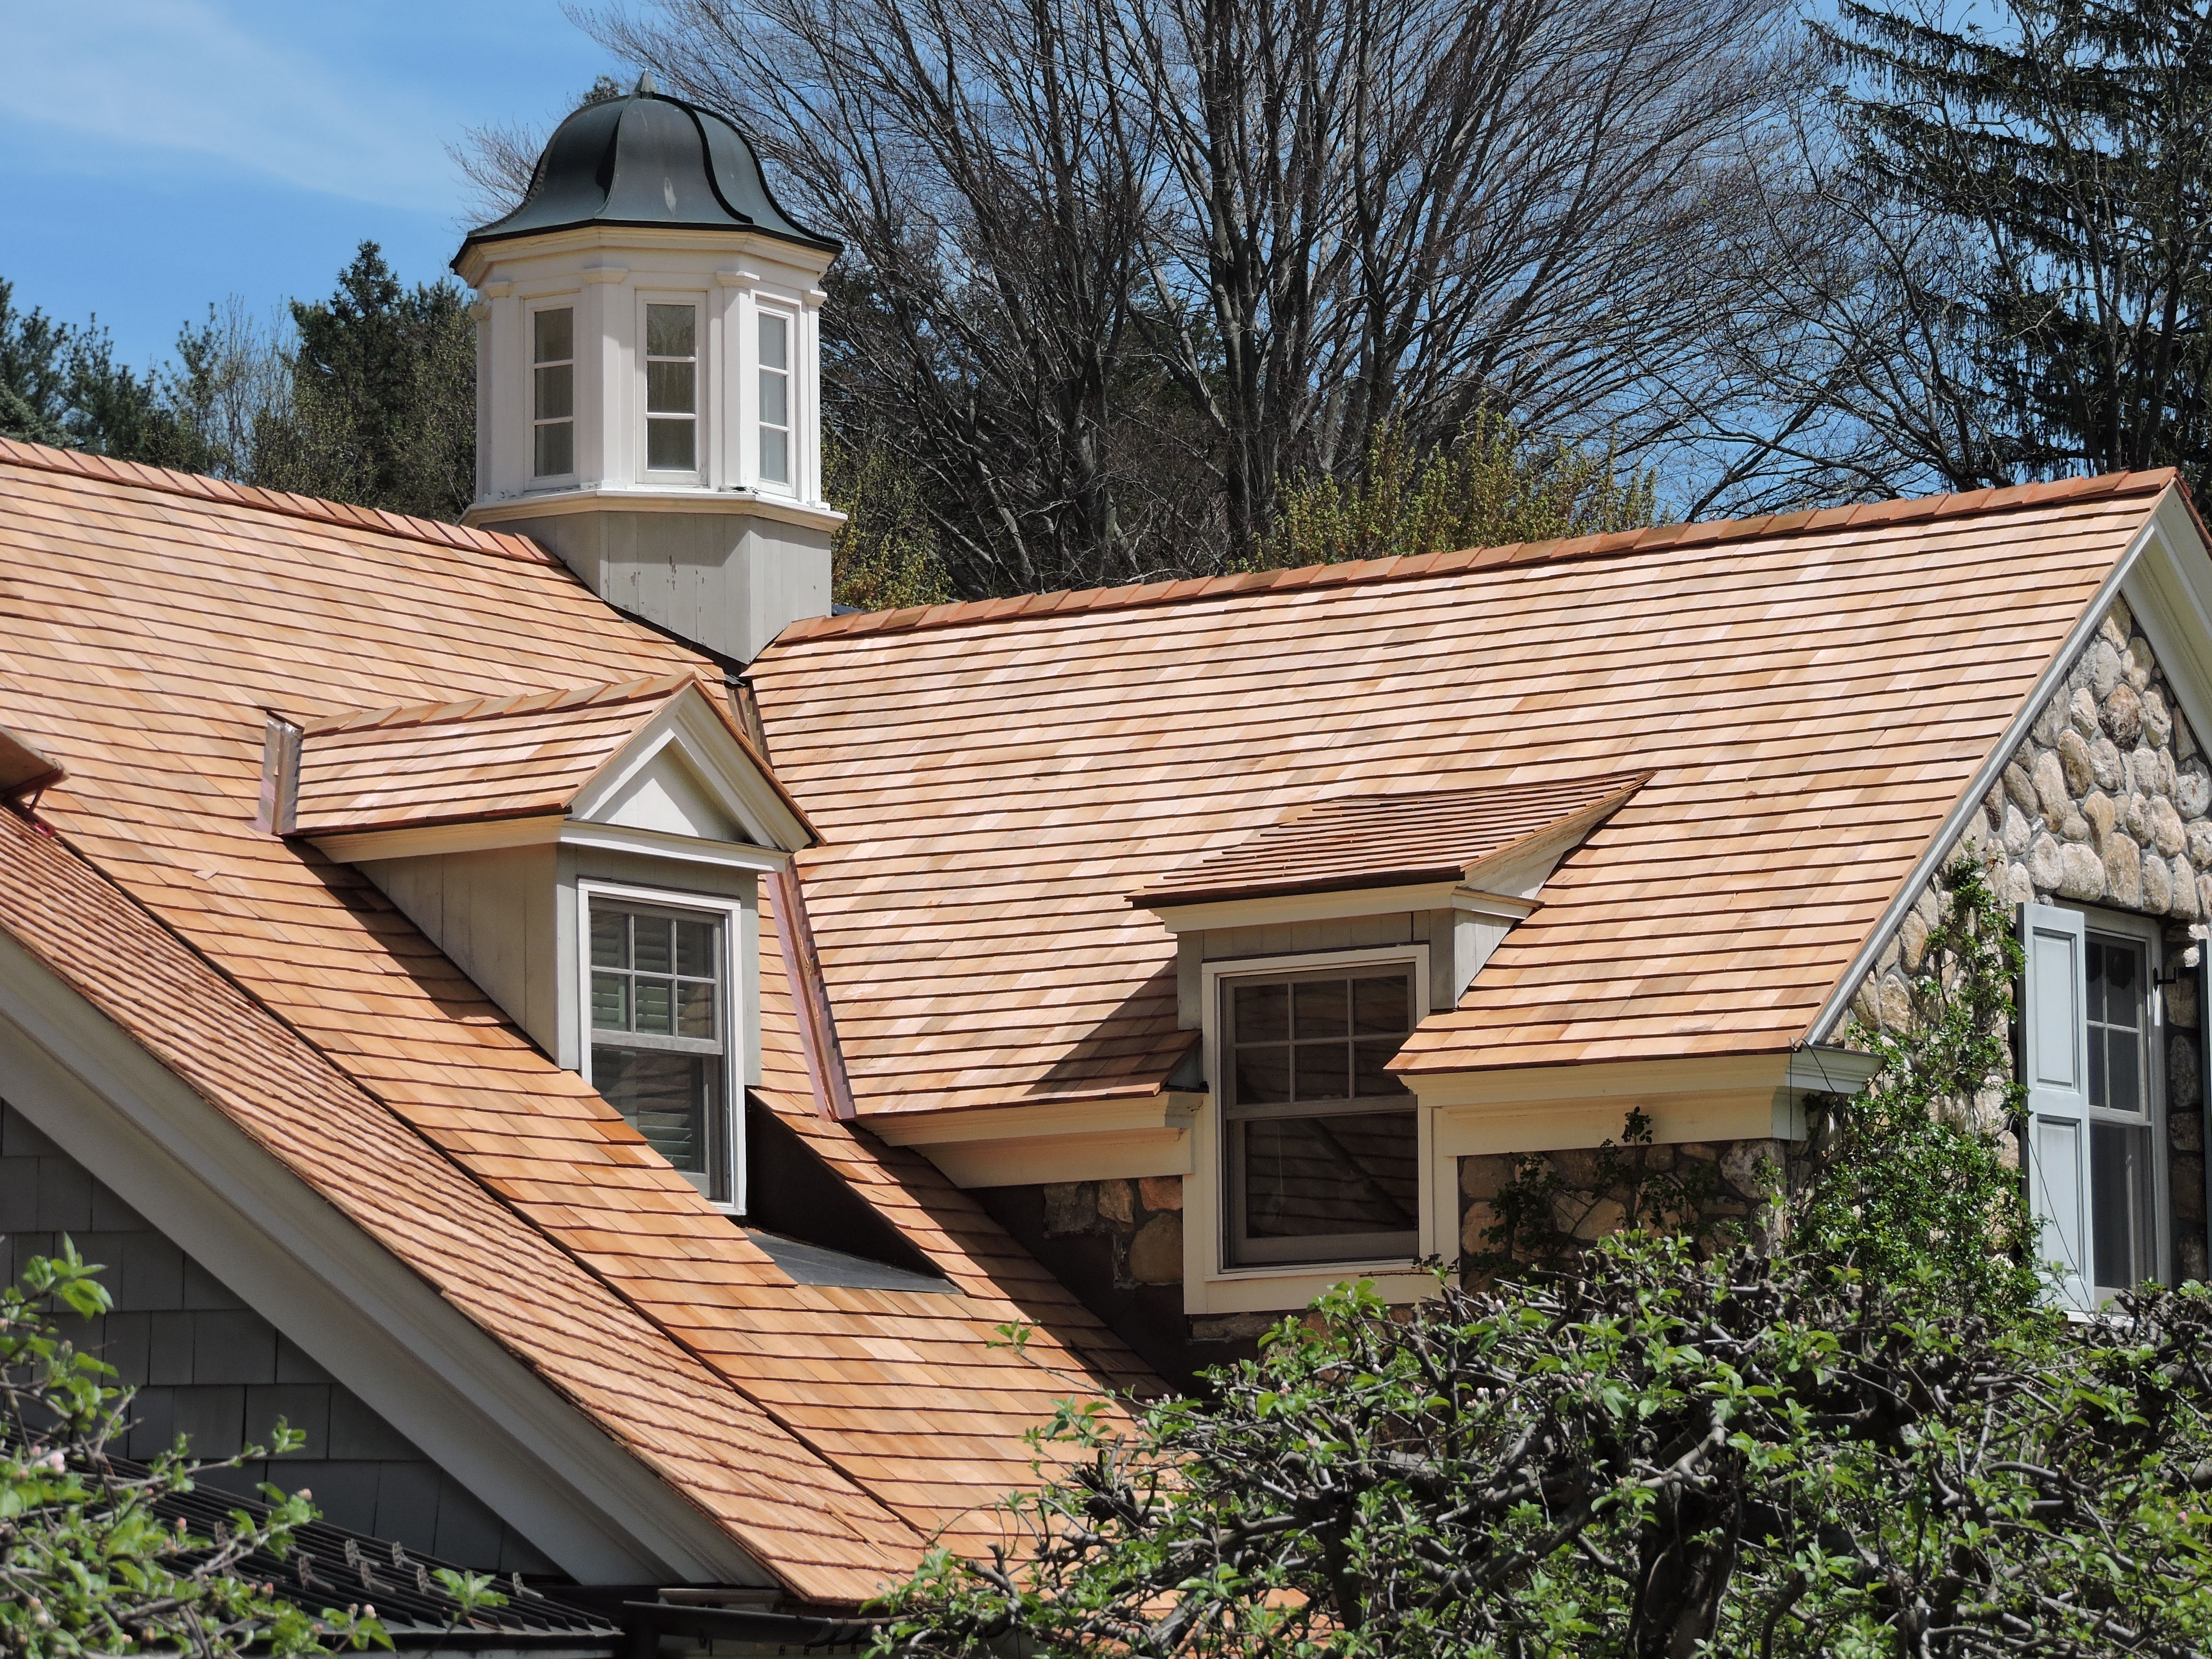 The complexity of Wood Roofs